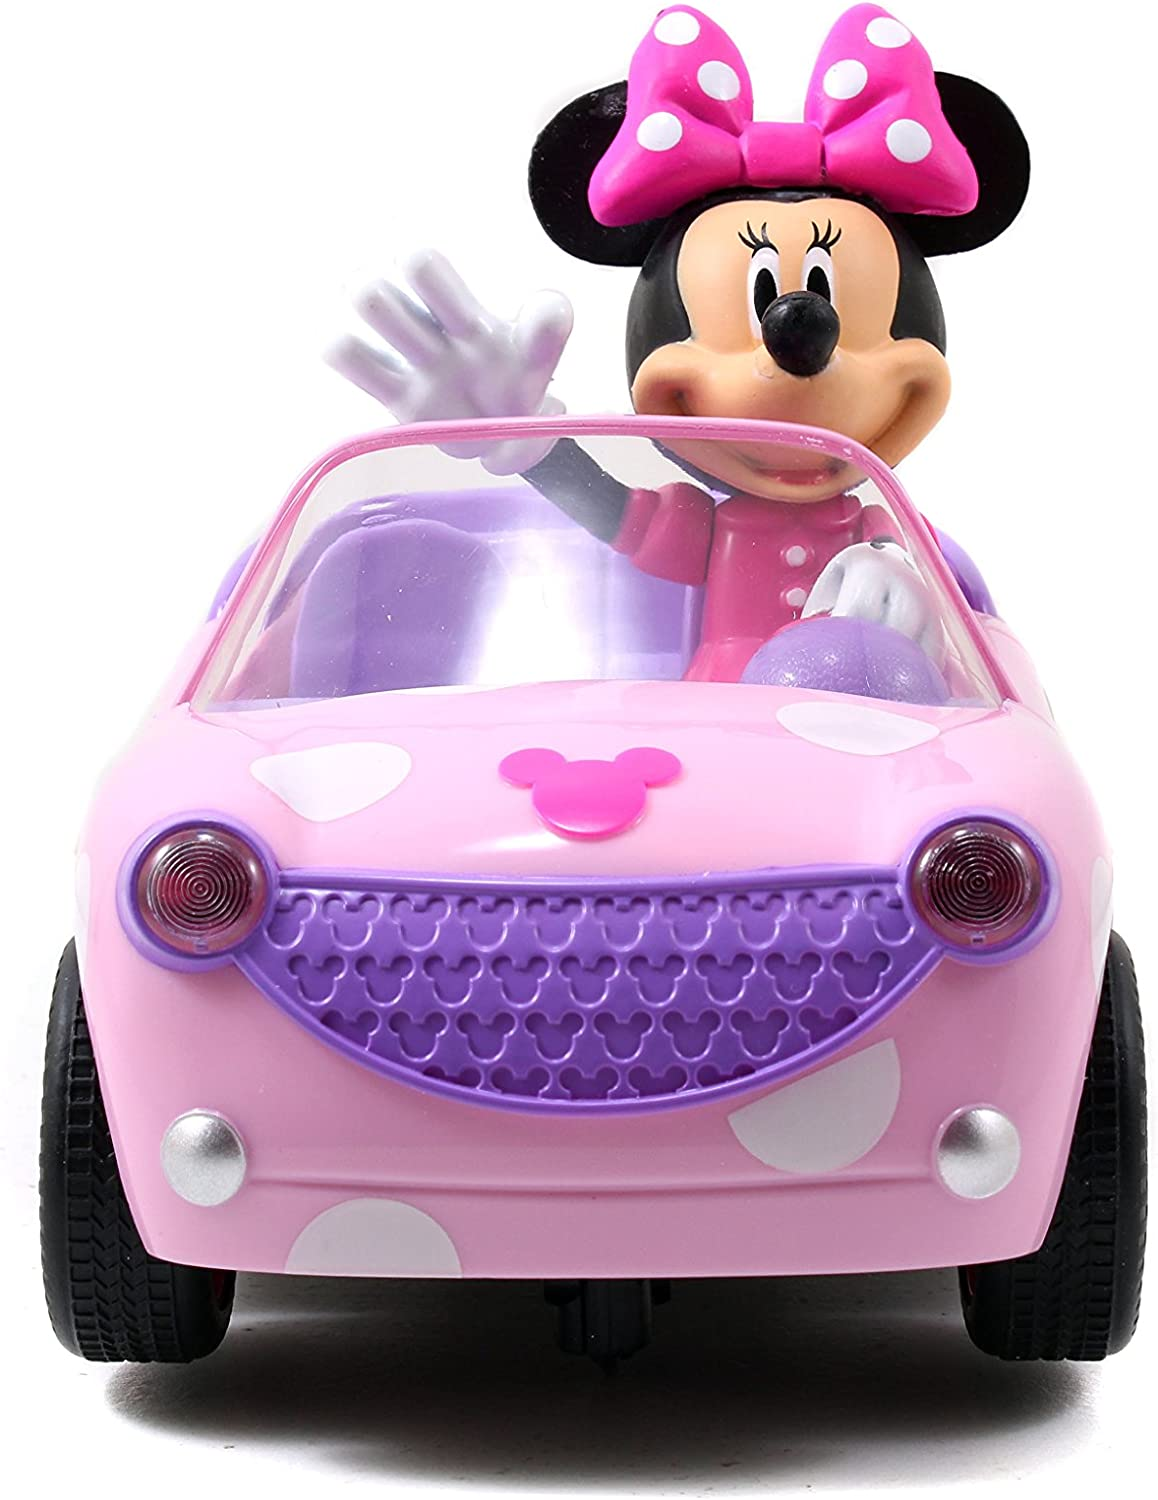 Disney Junior Minnie Mouse Roadster RC Car with Polka Dots, 27 MHz, Pink...